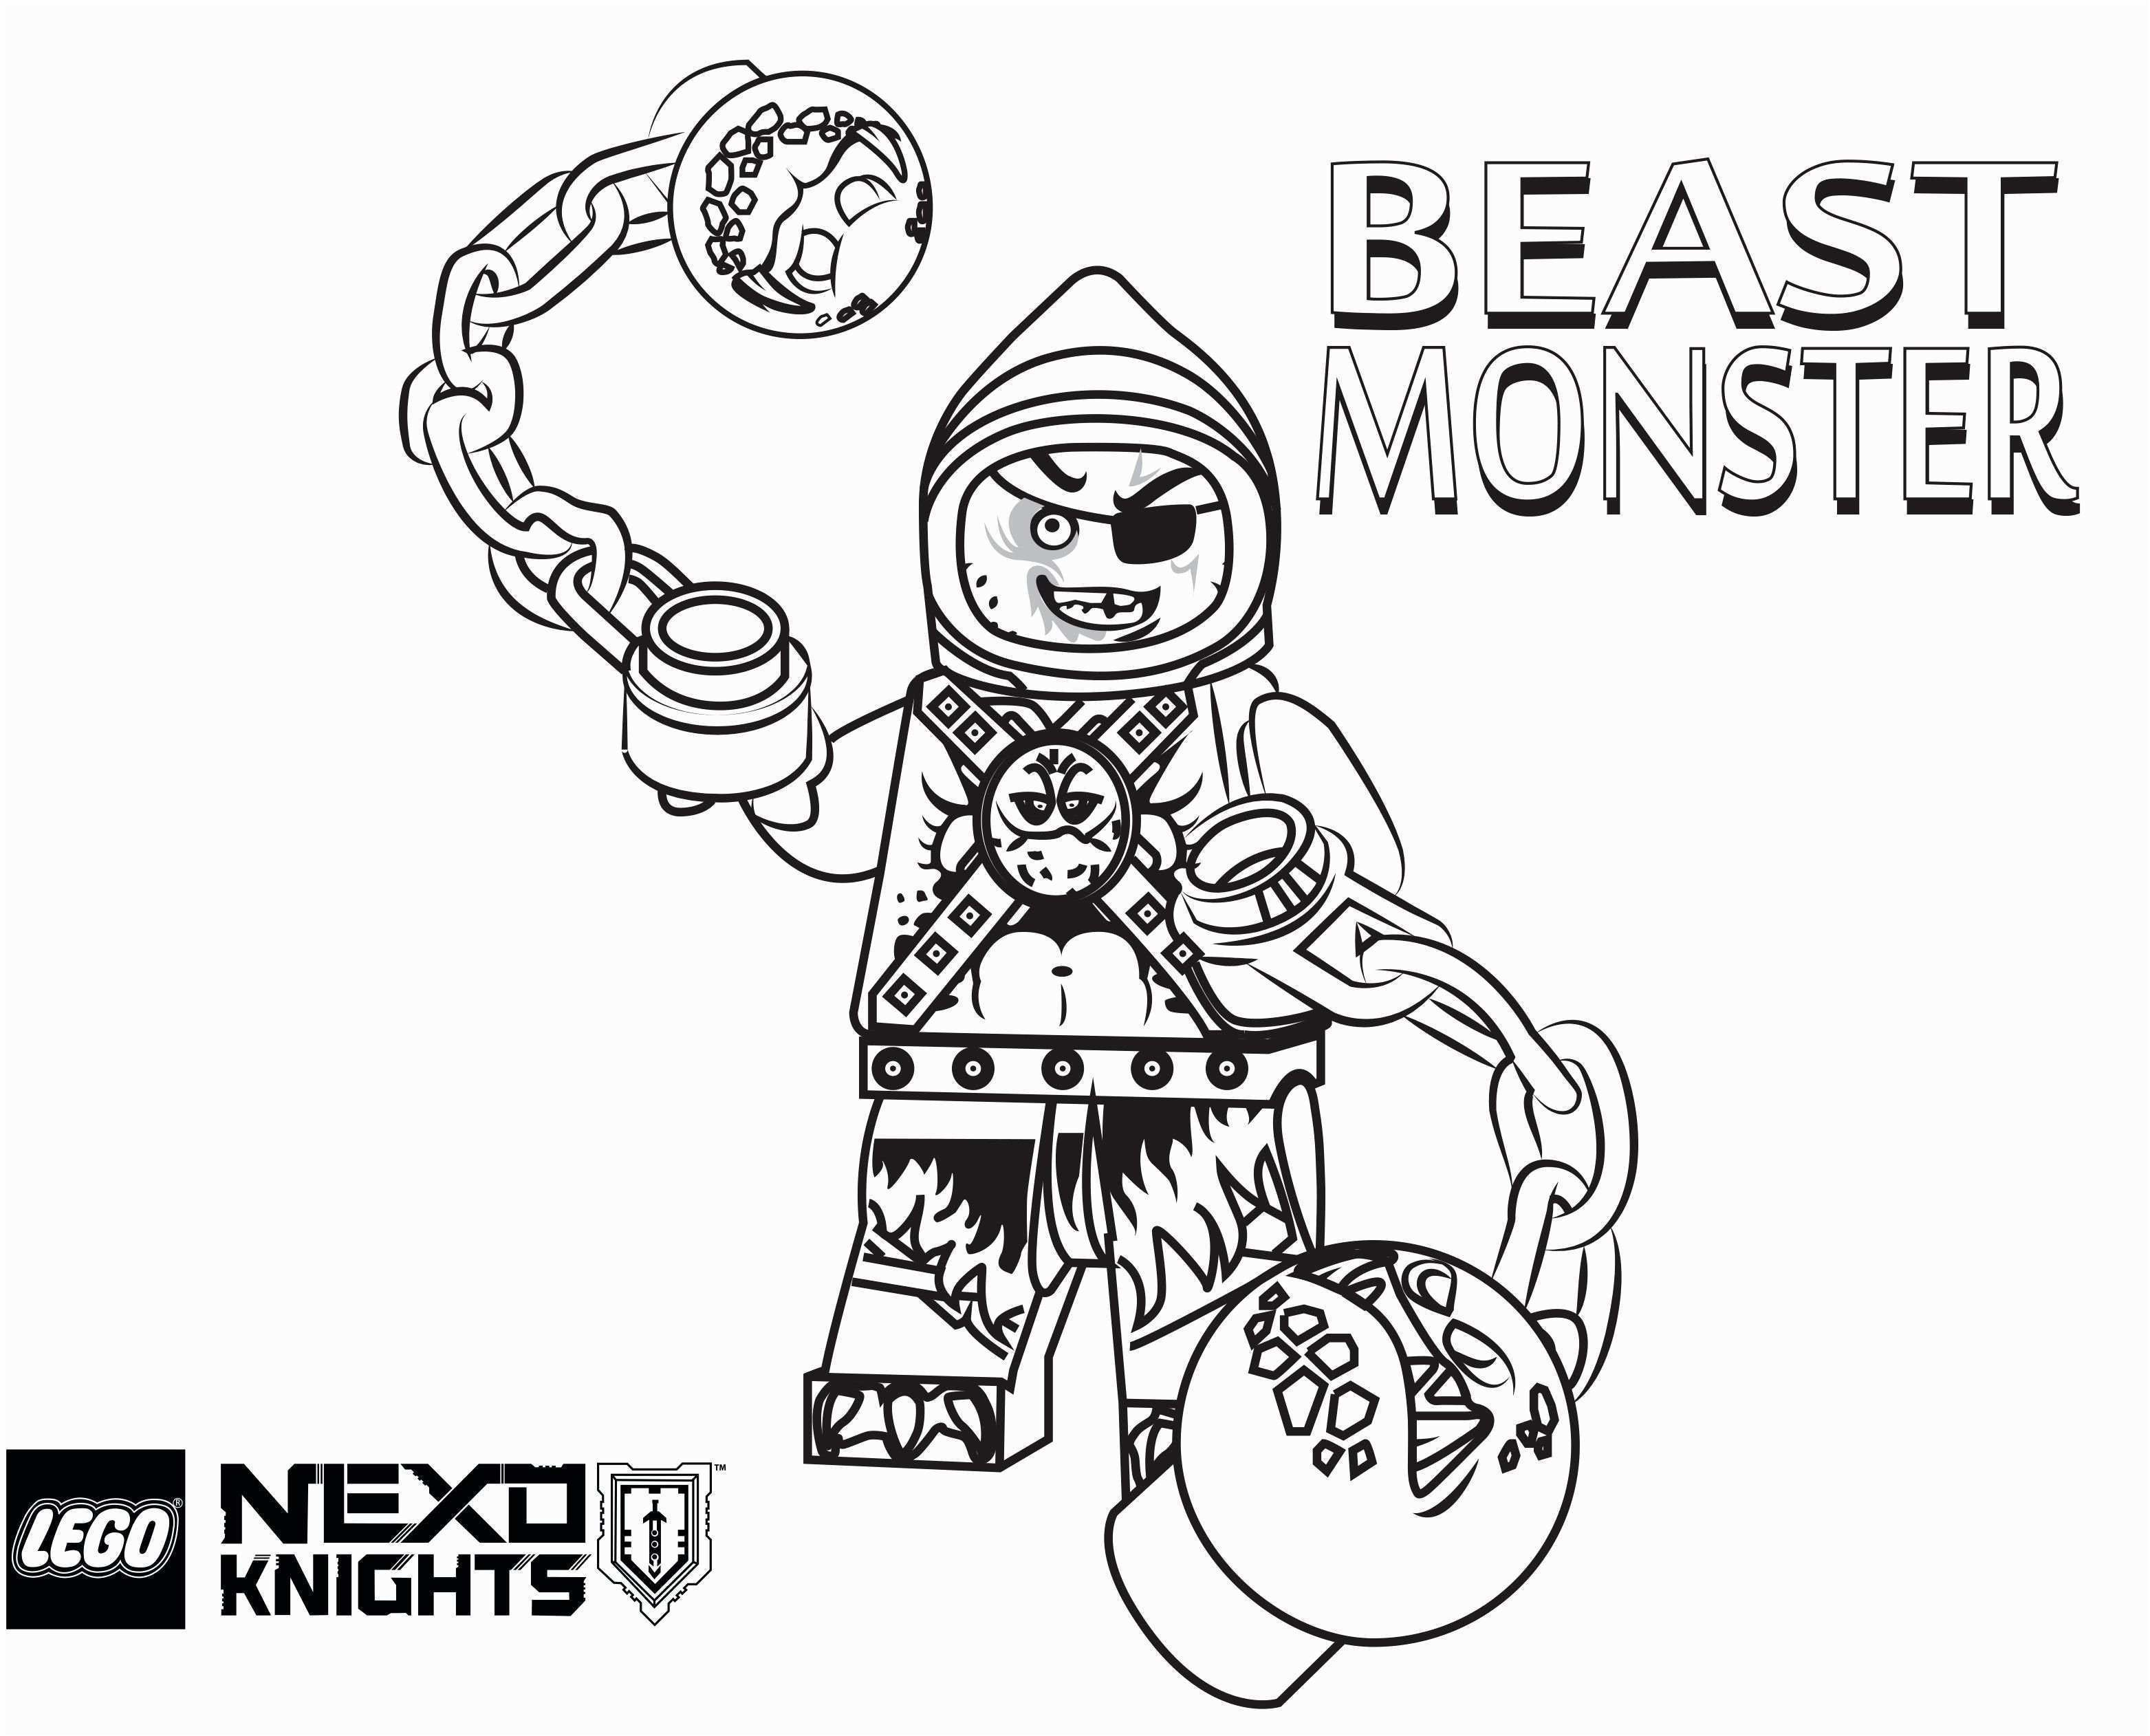 Nexo Knights Coloring Pages Lego Nexo Knight Coloring Pages Elegant Coloriage Lego Nexo Knights Albanysinsanity Com Monster Coloring Pages Lego Coloring Pages Lego Coloring